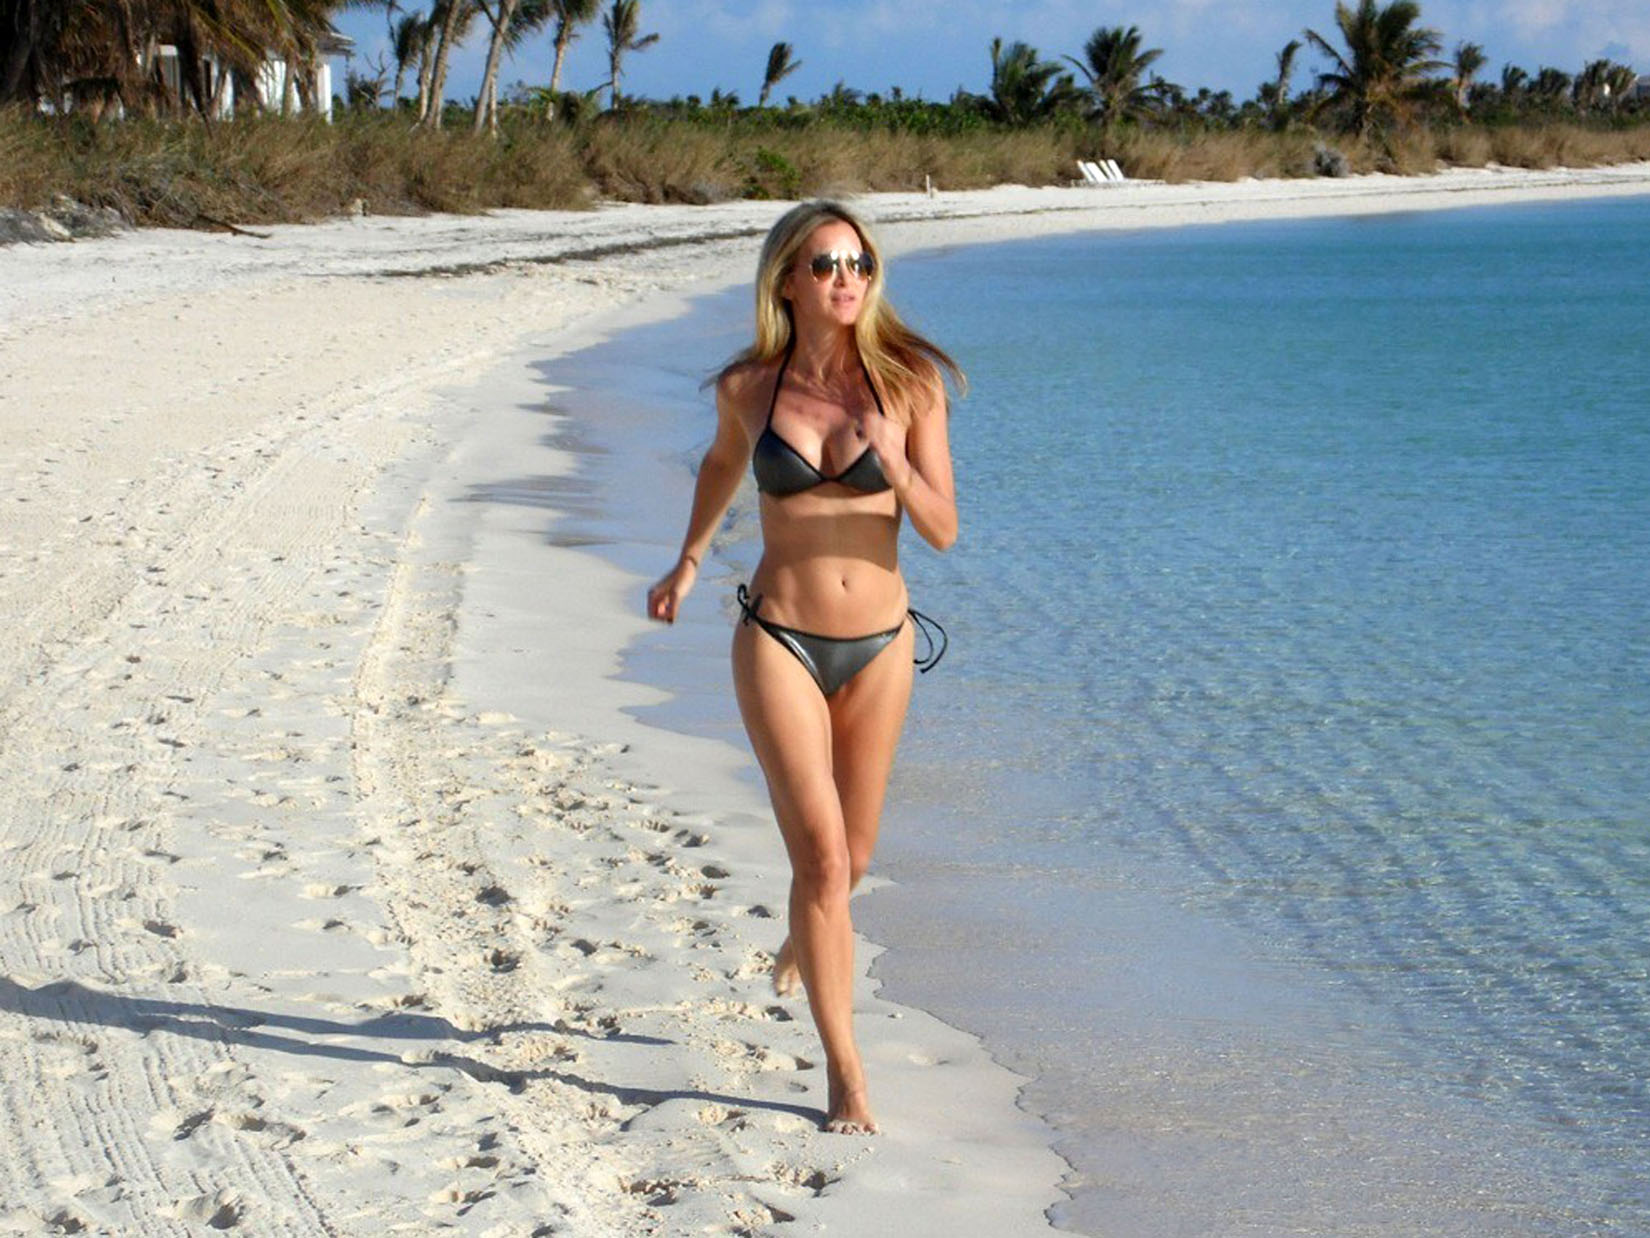 Caprice Bourret shows off her bikini body in the Bahamas